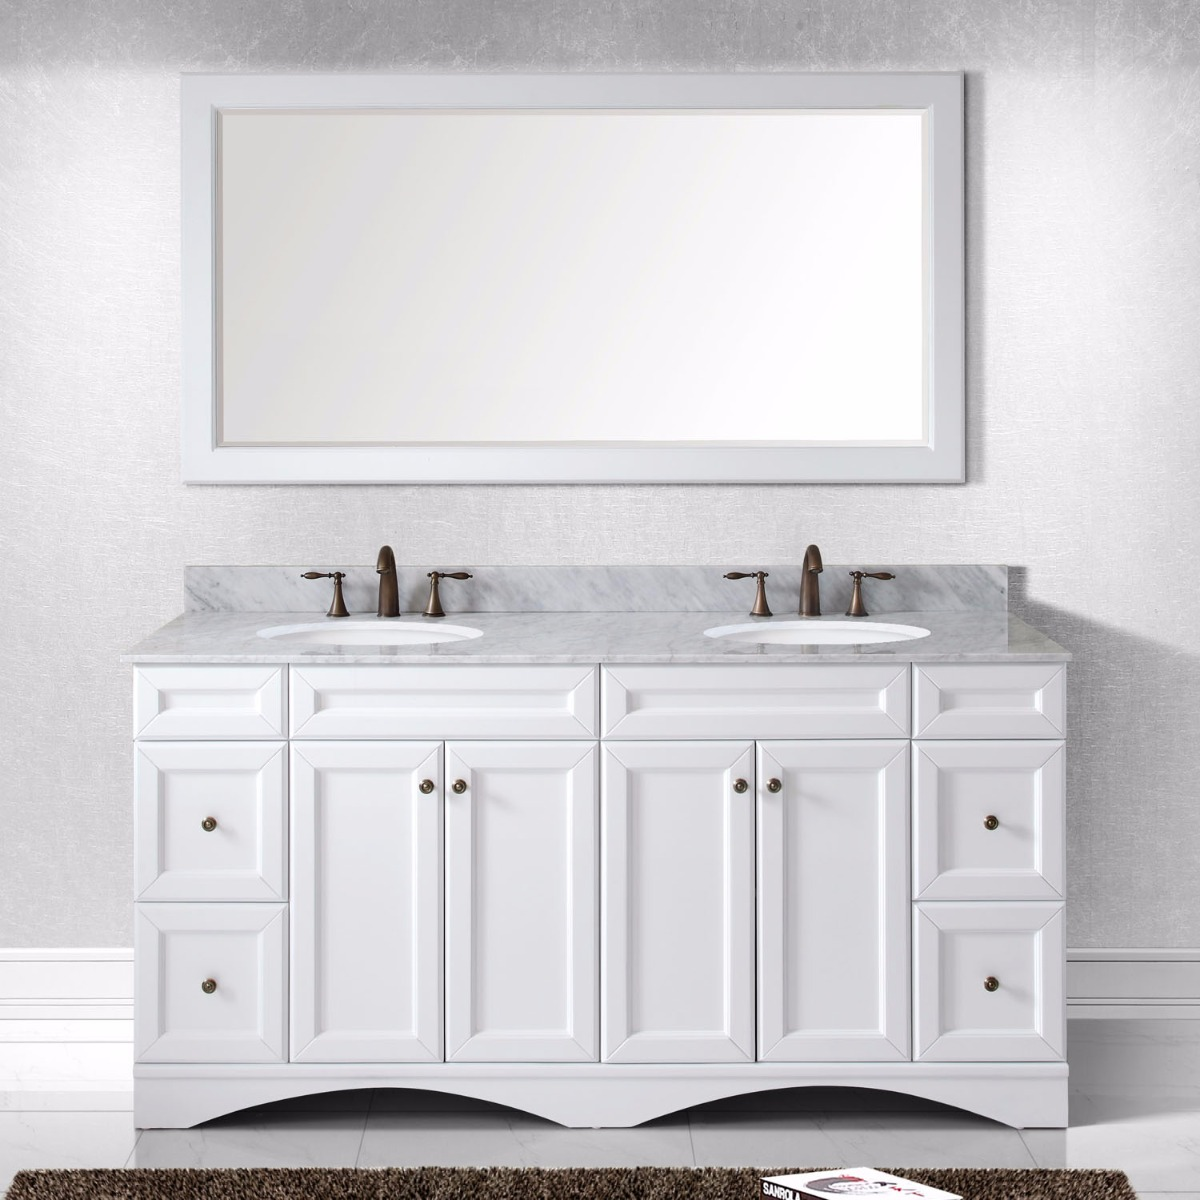 Virtu USA ED-25072-WMRO-WH Talisa 72 inch Double Round Sink Marble Top Vanity in White with Mirror